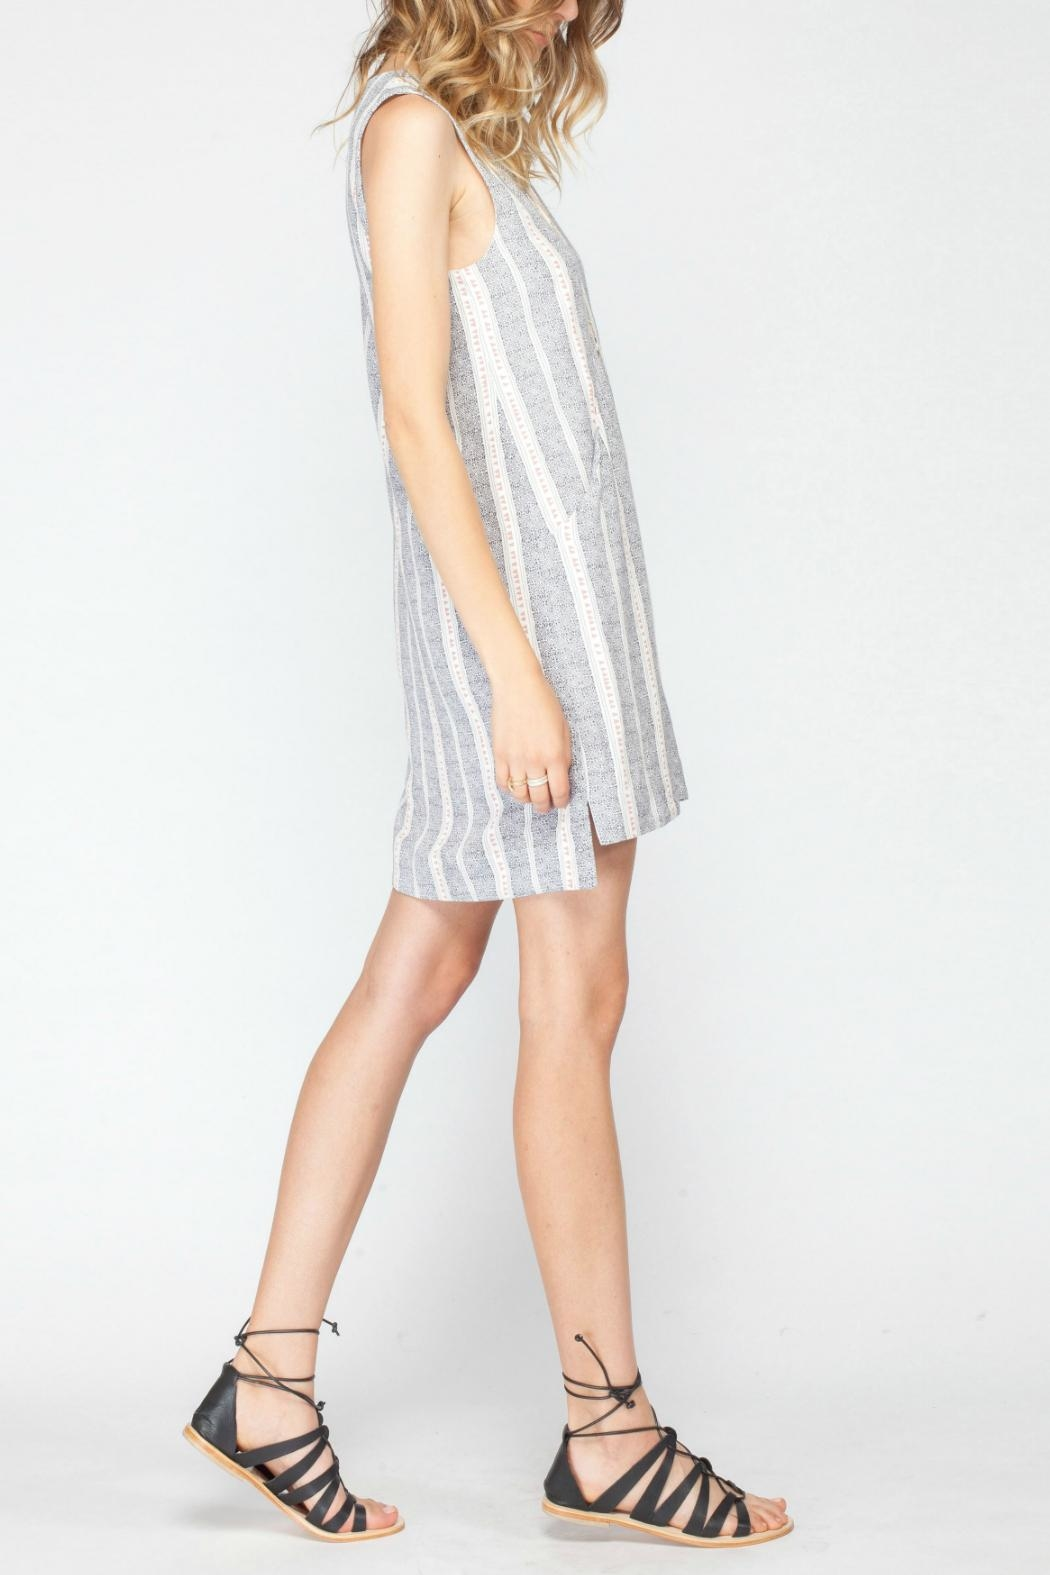 Gentle Fawn Printed Shift Dress - Side Cropped Image